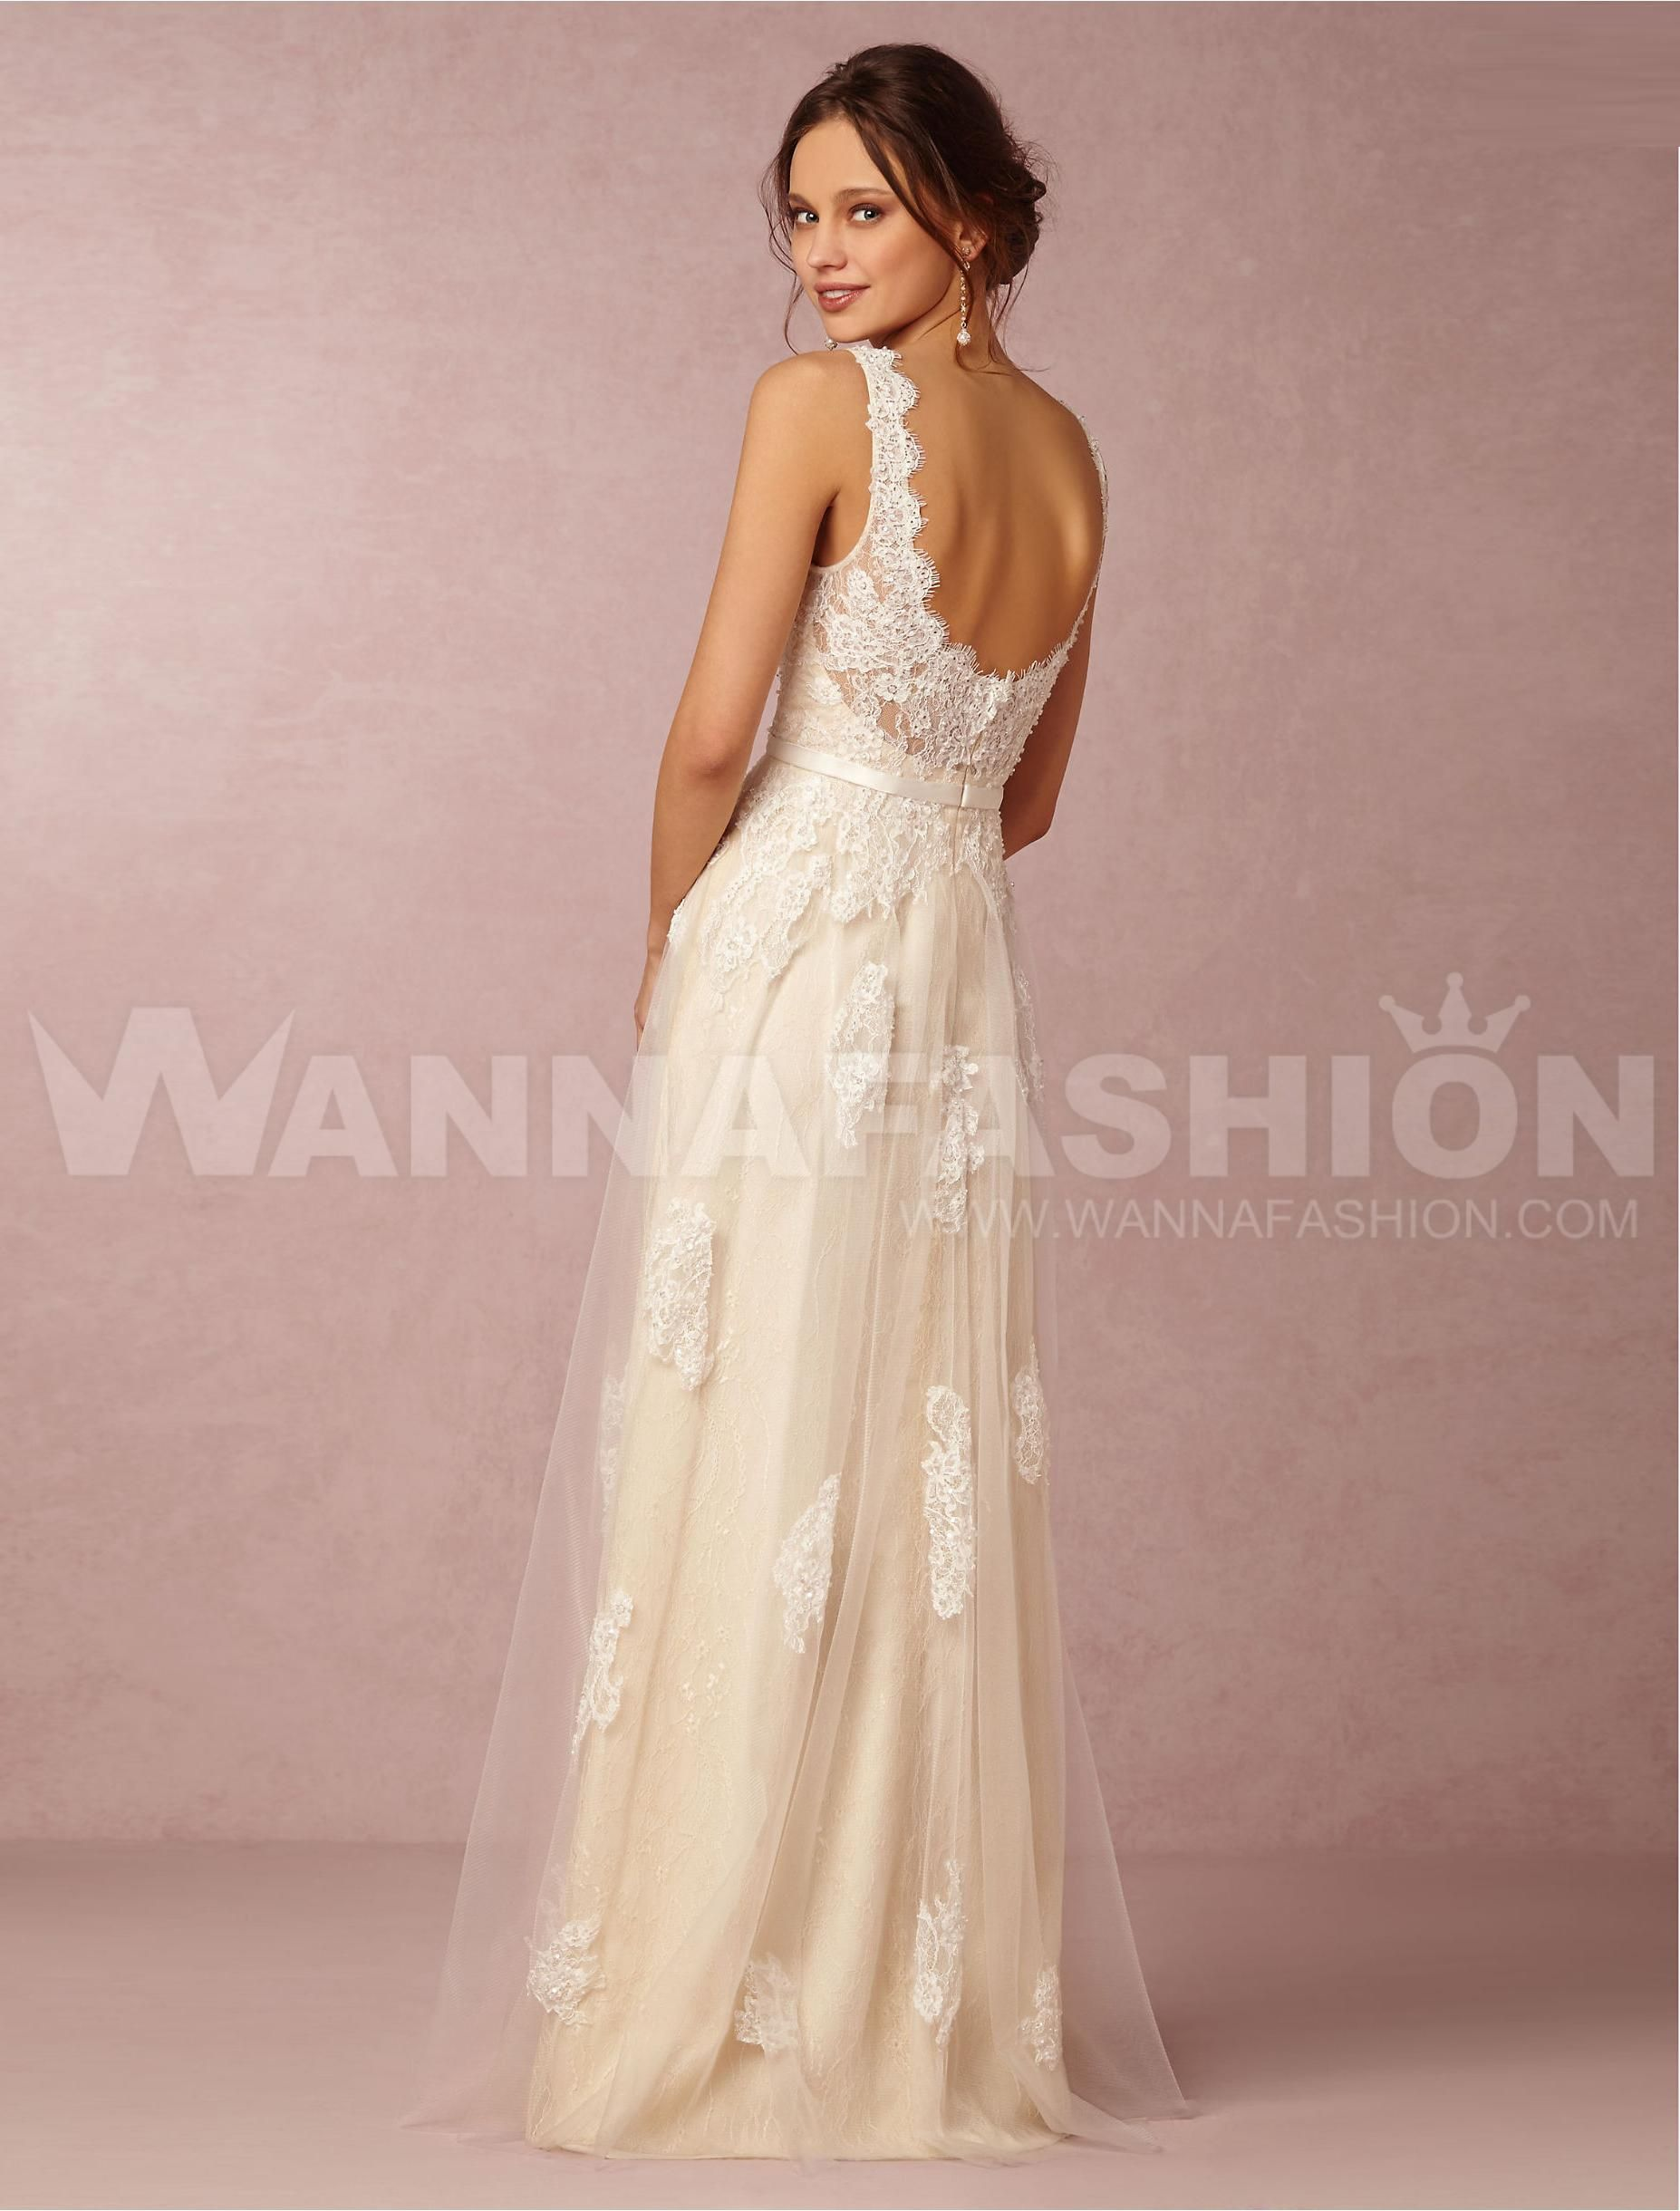 Cream colored vintage wedding dresses  structured modern wedding dress for hourglass  Google Search  My